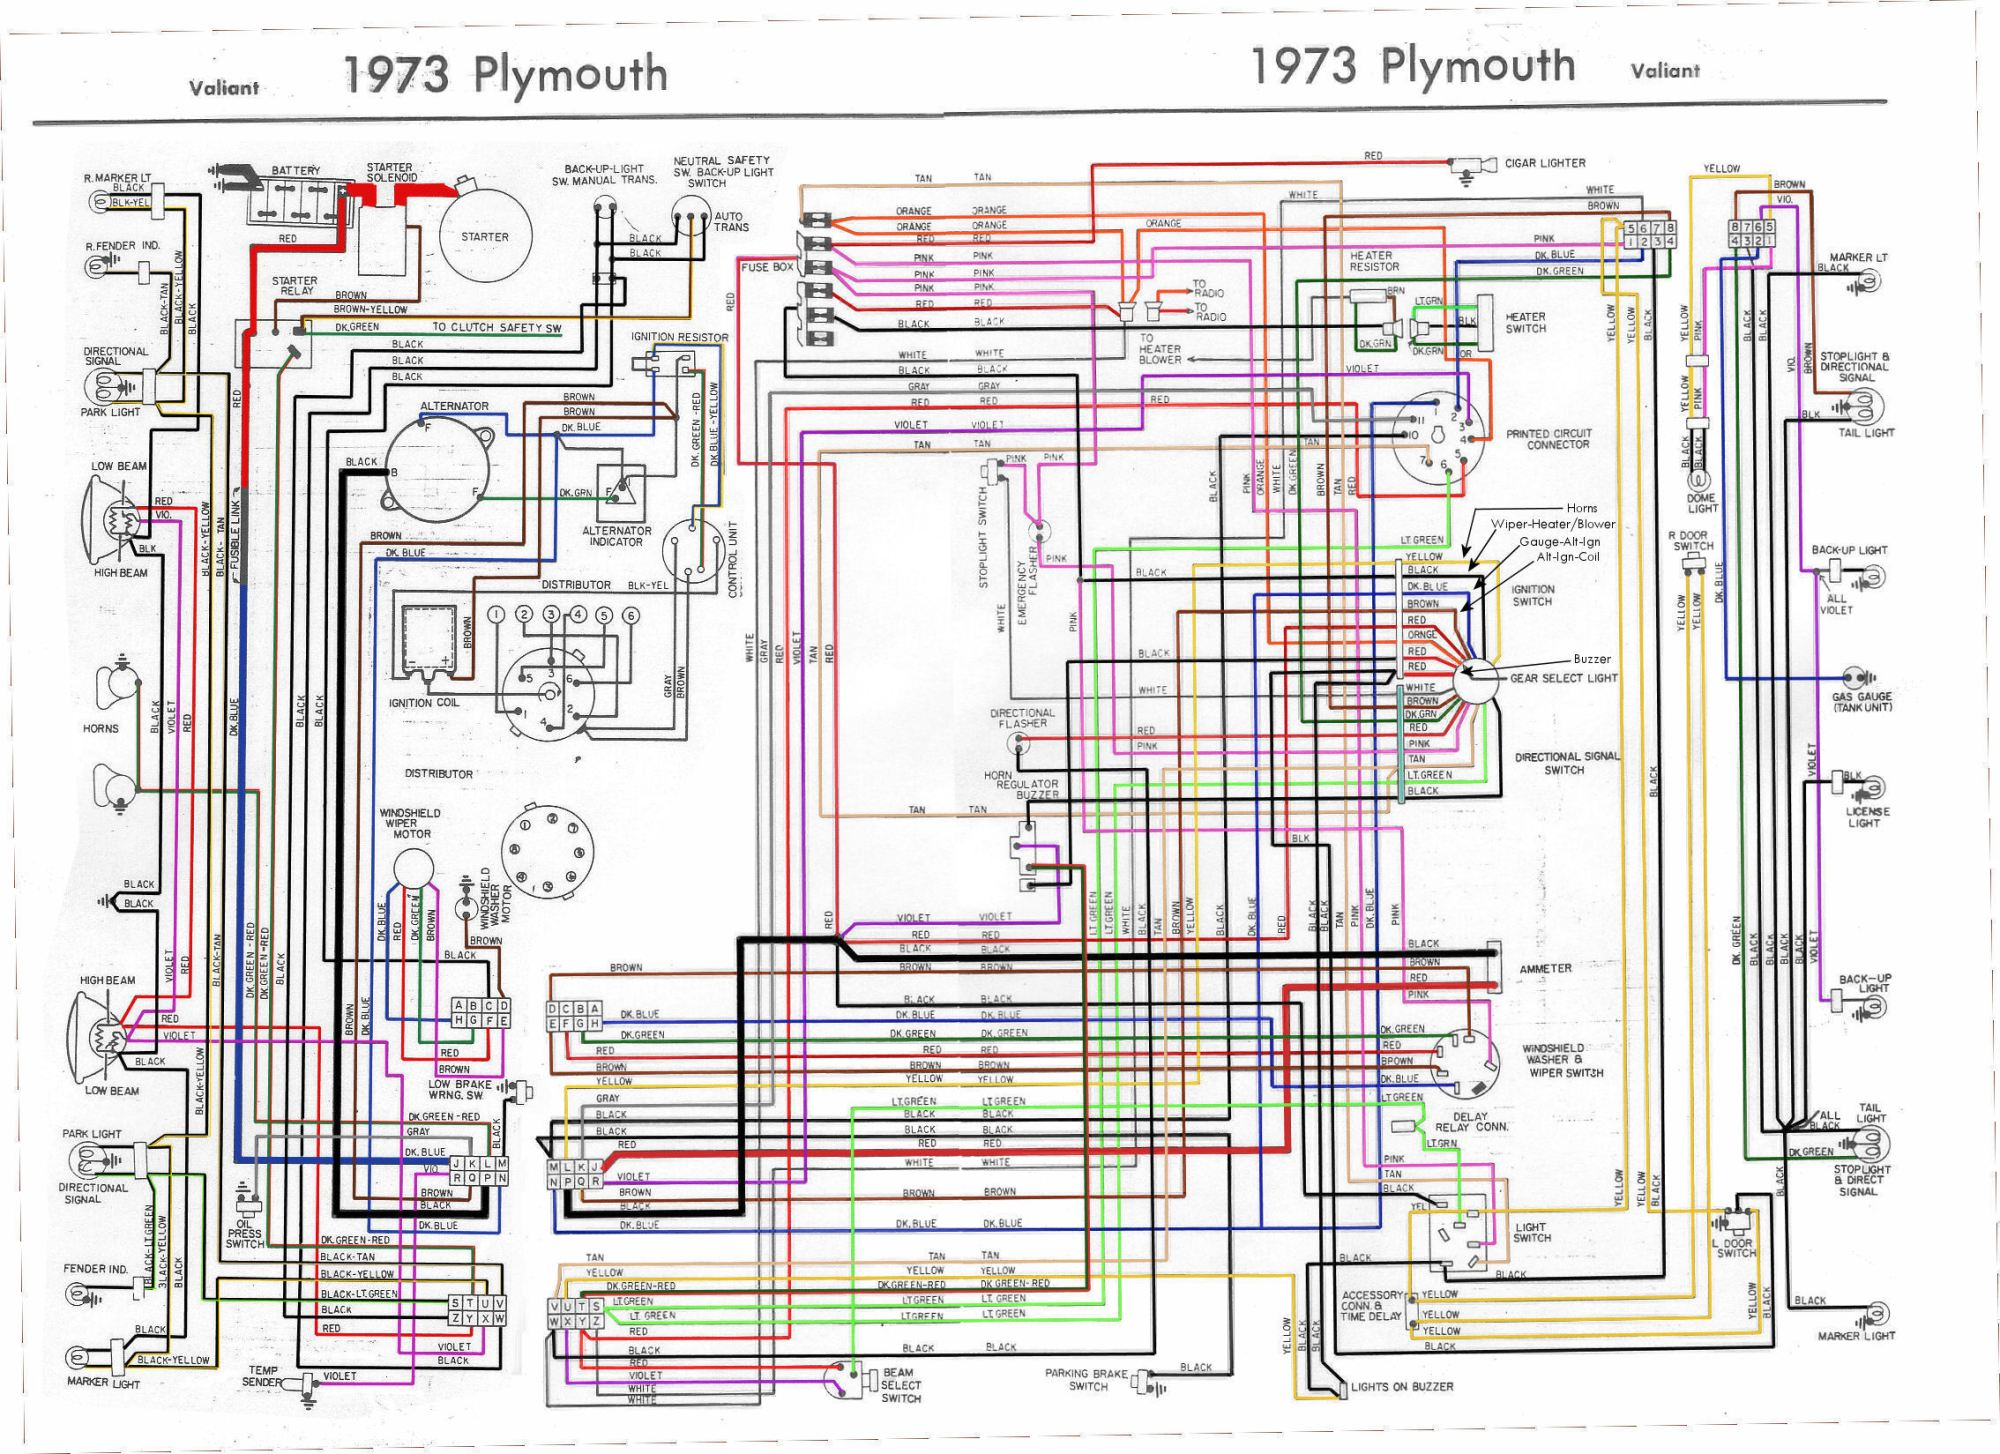 hight resolution of 1937 plymouth wiring diagram wiring diagrams scematic plymouth wiring diagrams 1974 plymouth wiring diagram wiring diagram